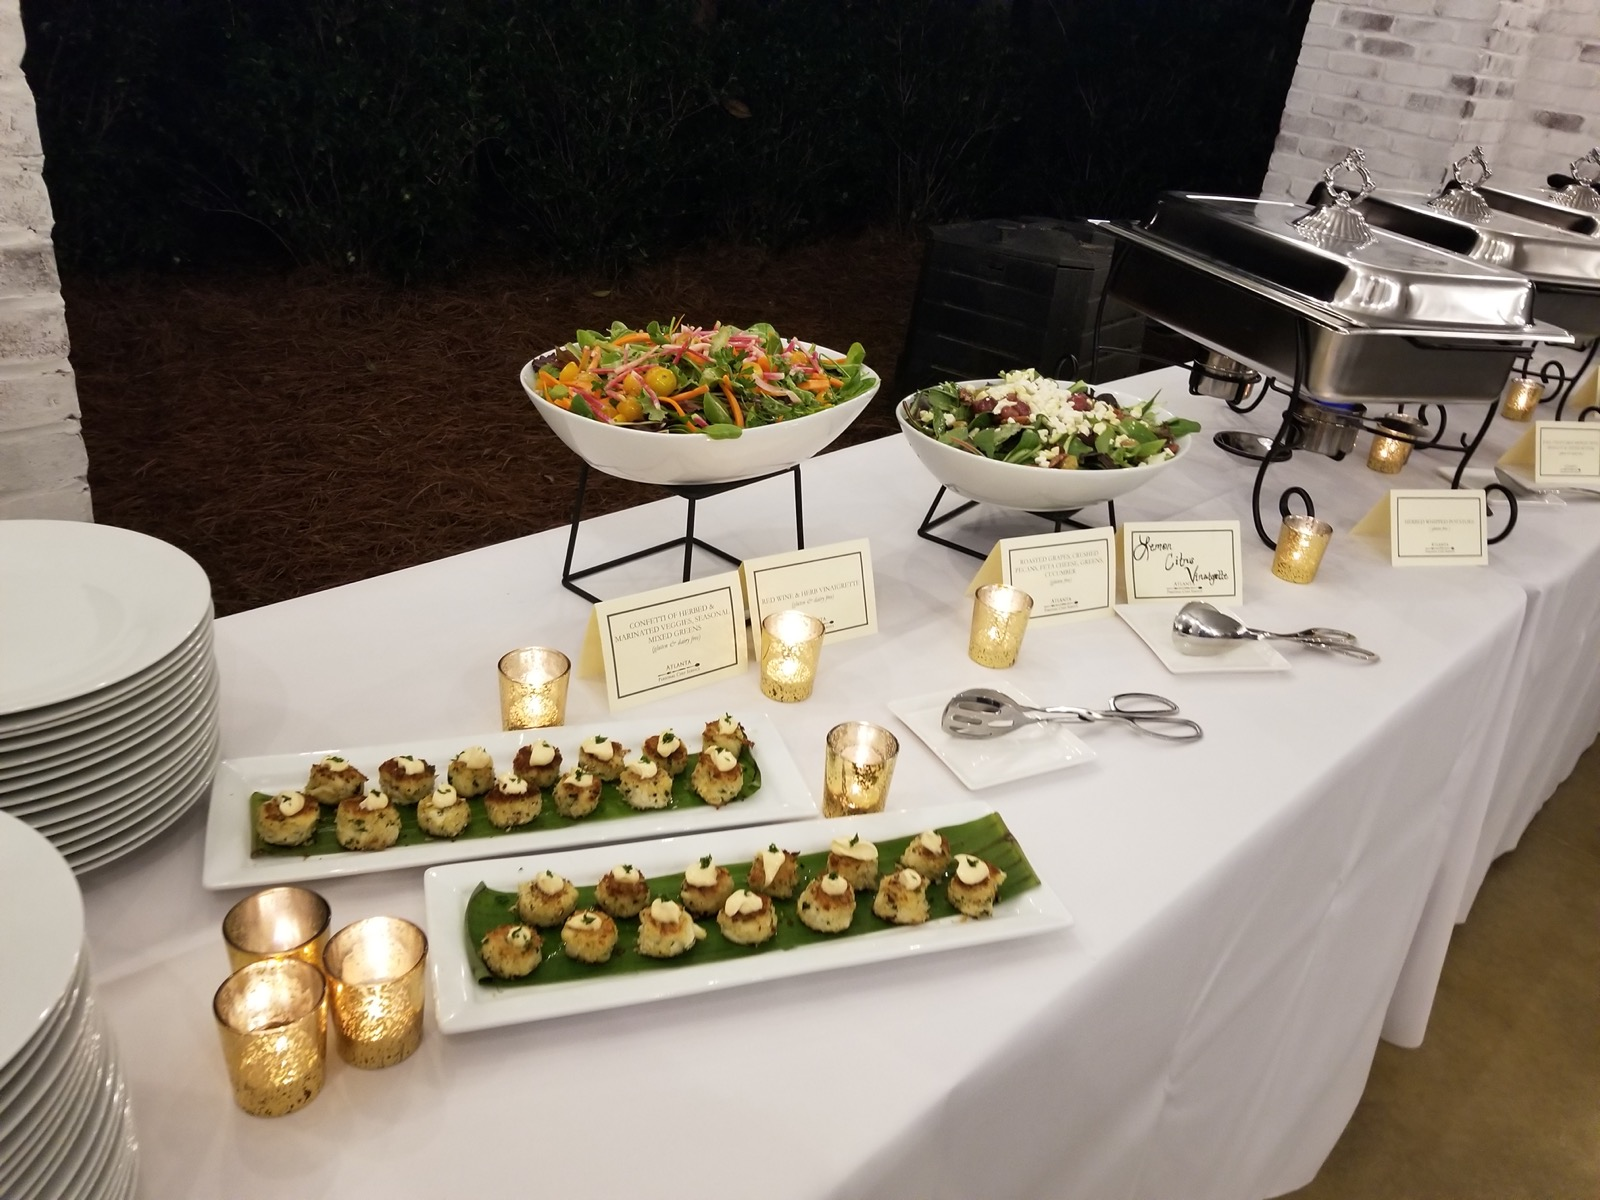 Buffet style dinner with crab cake appetizers and roasted grape salad and confetti vegetable salad